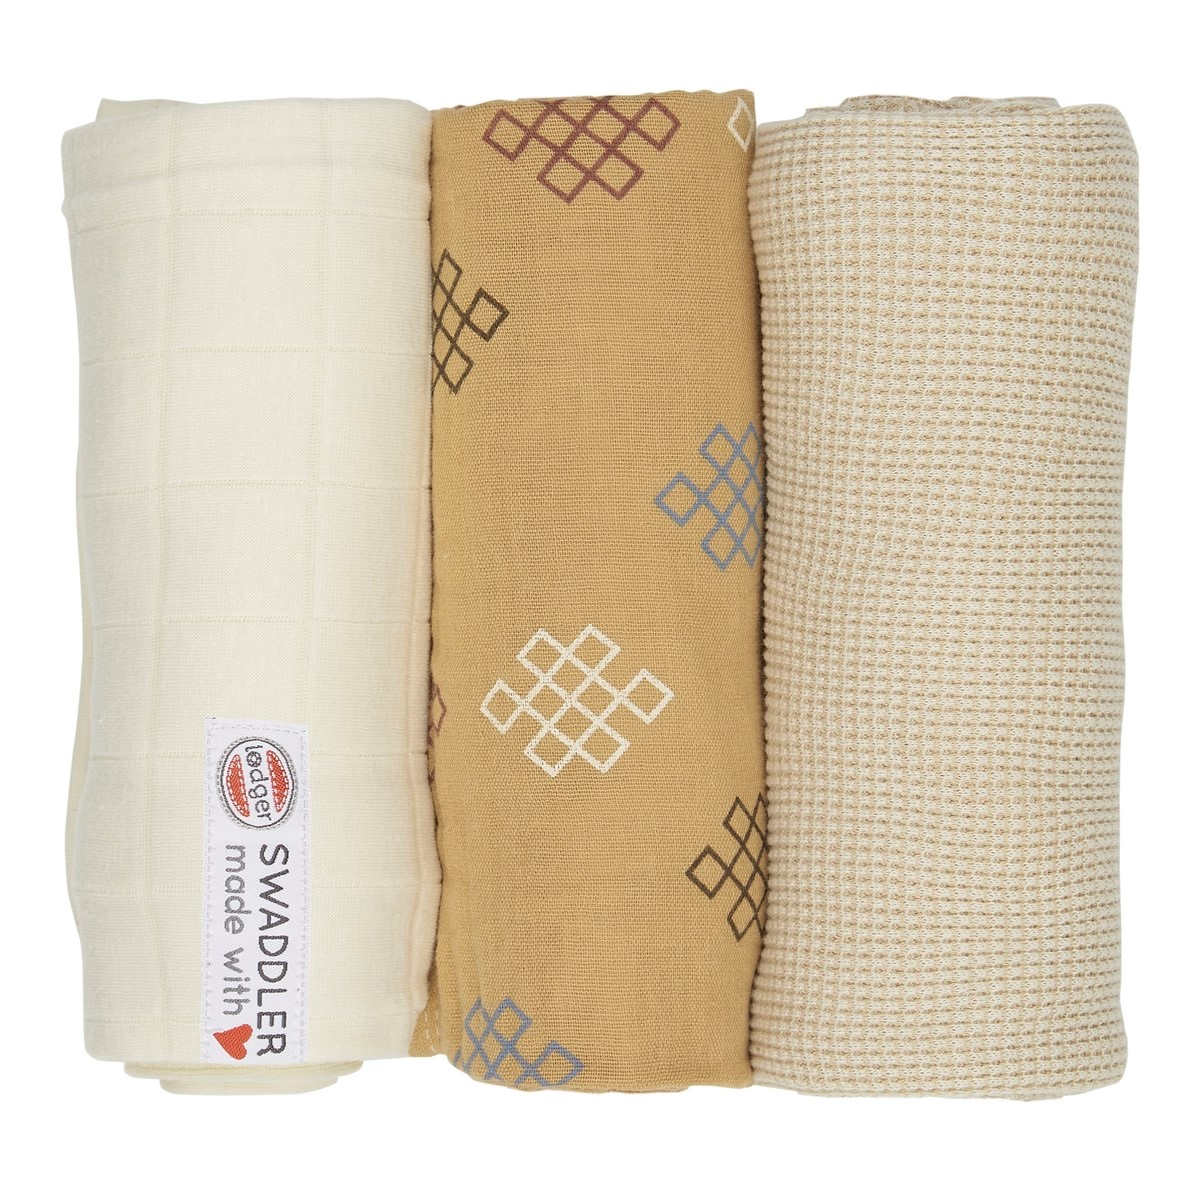 LODGER Plenky Swaddler Empire Knot 3 ks Ivory 70 x 70 cm